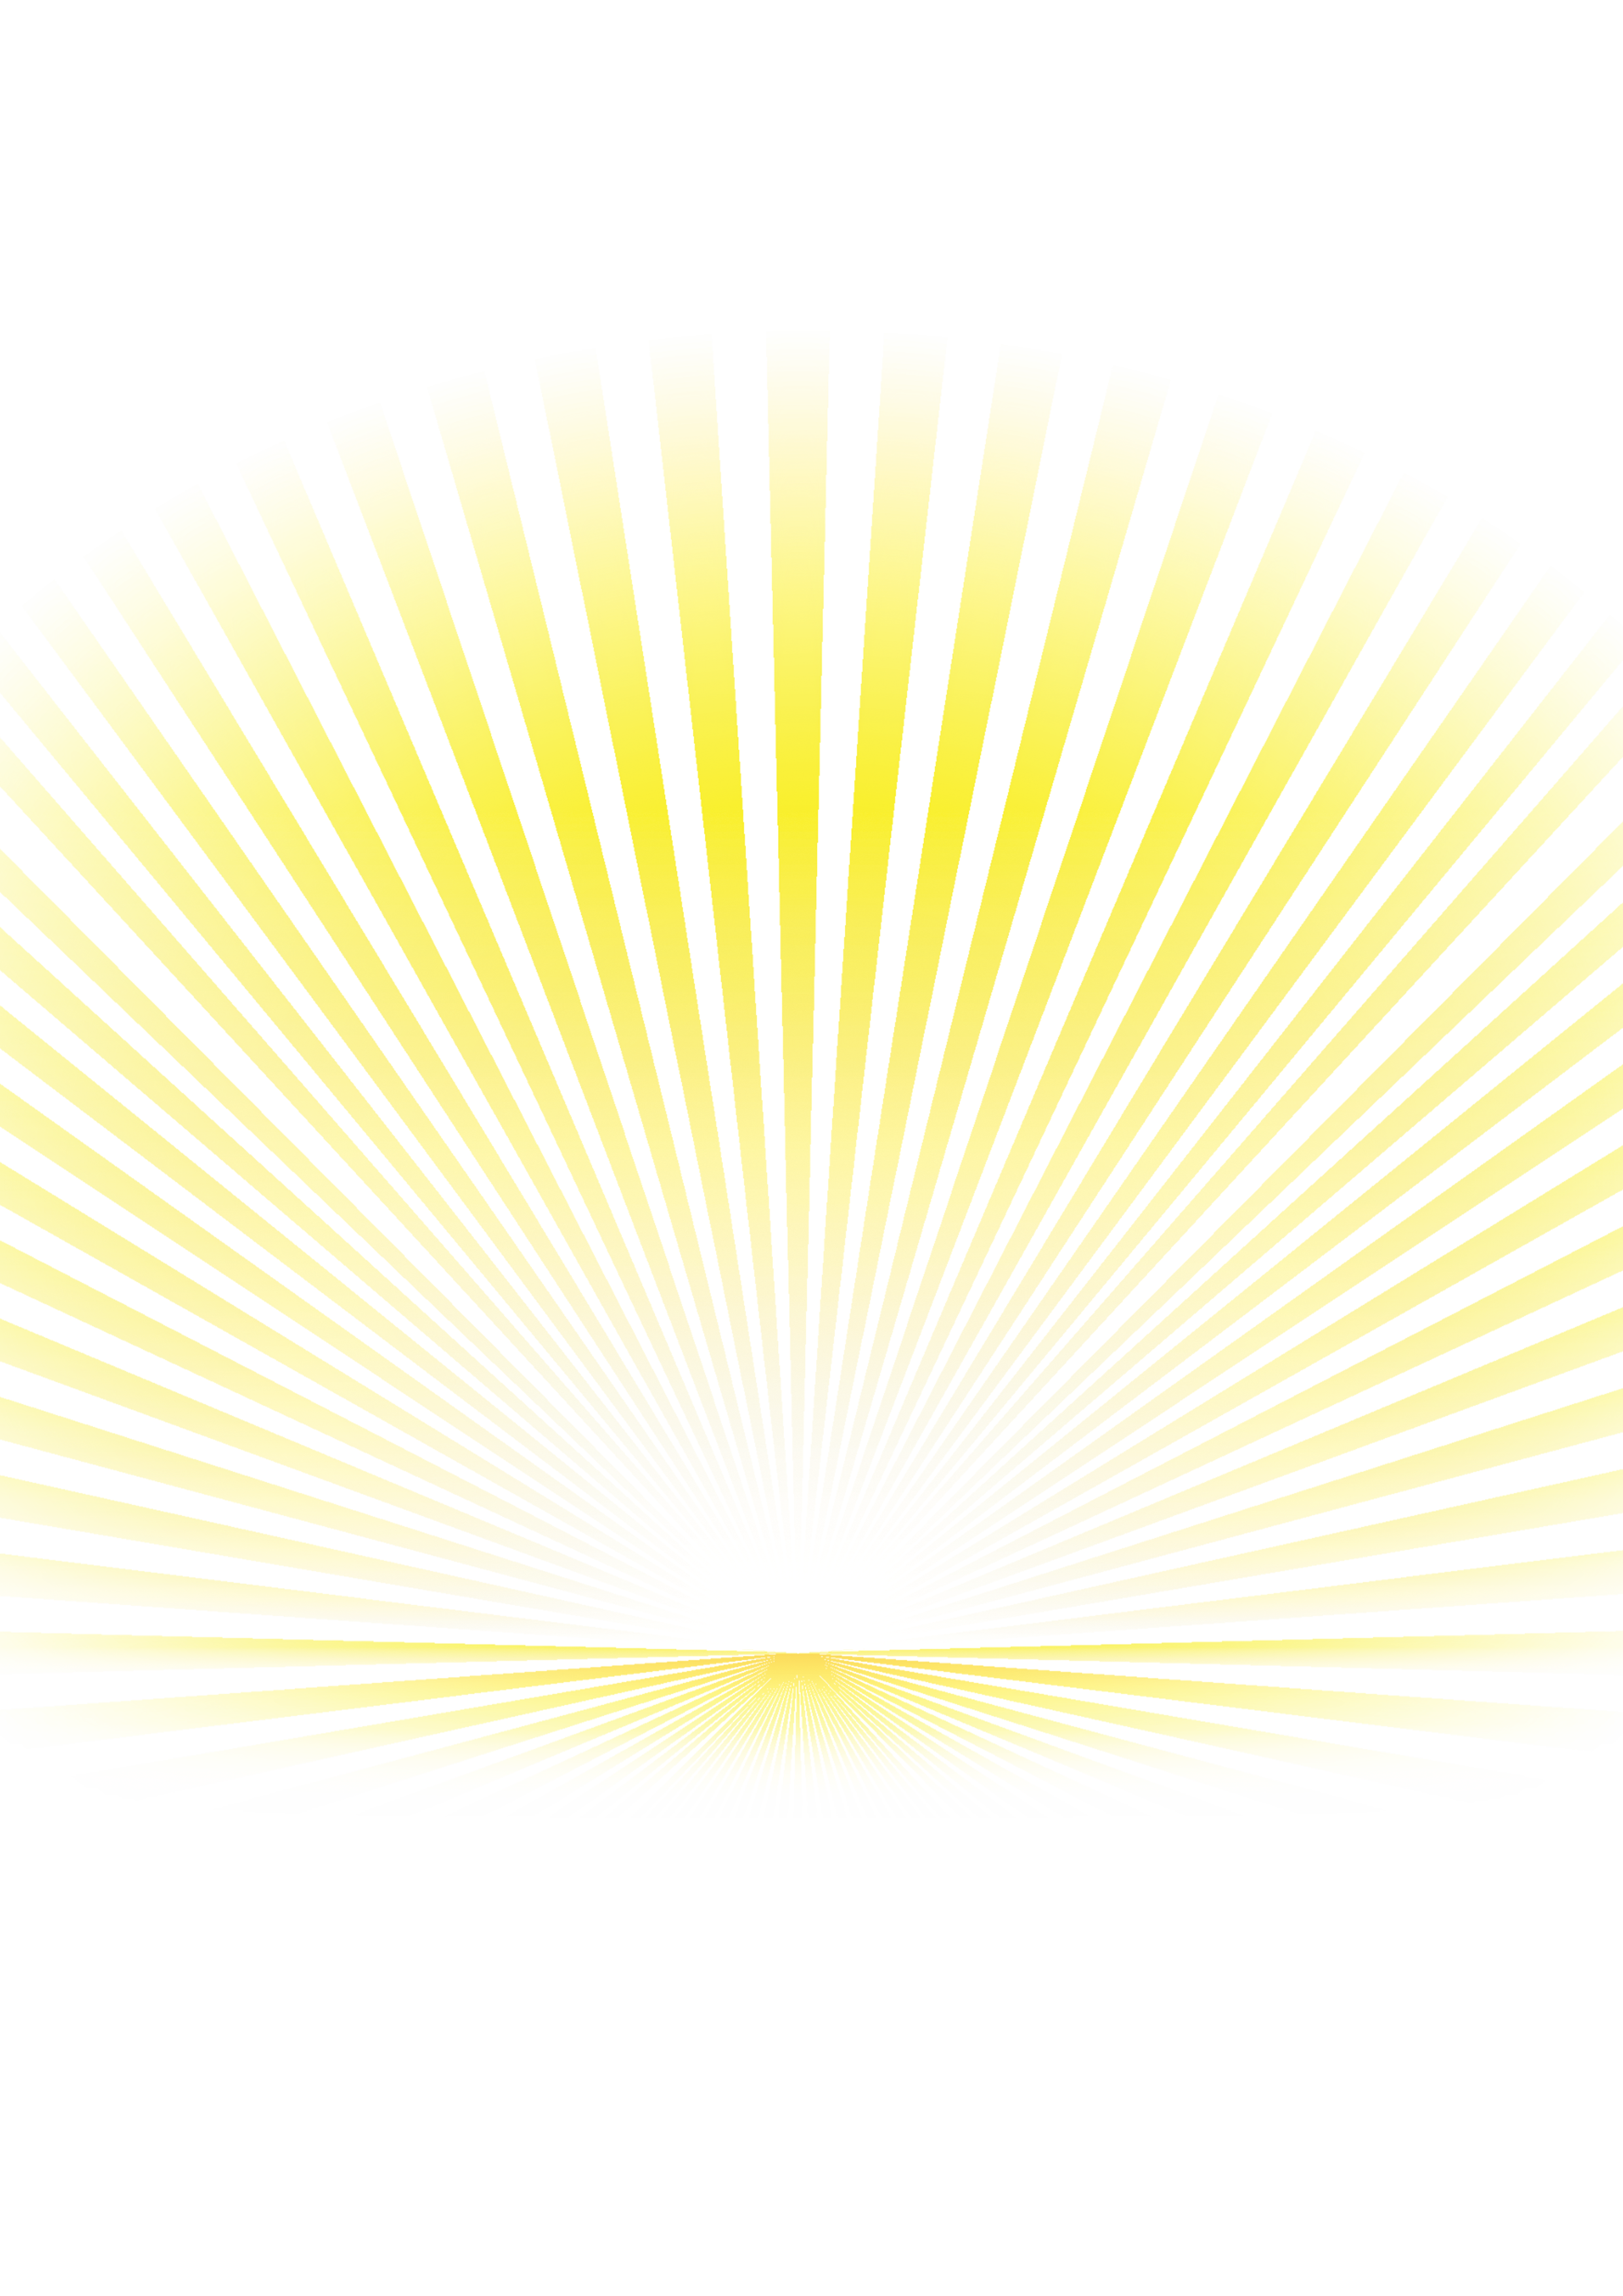 Shine Light Computer File HQ Image Free PNG PNG Image